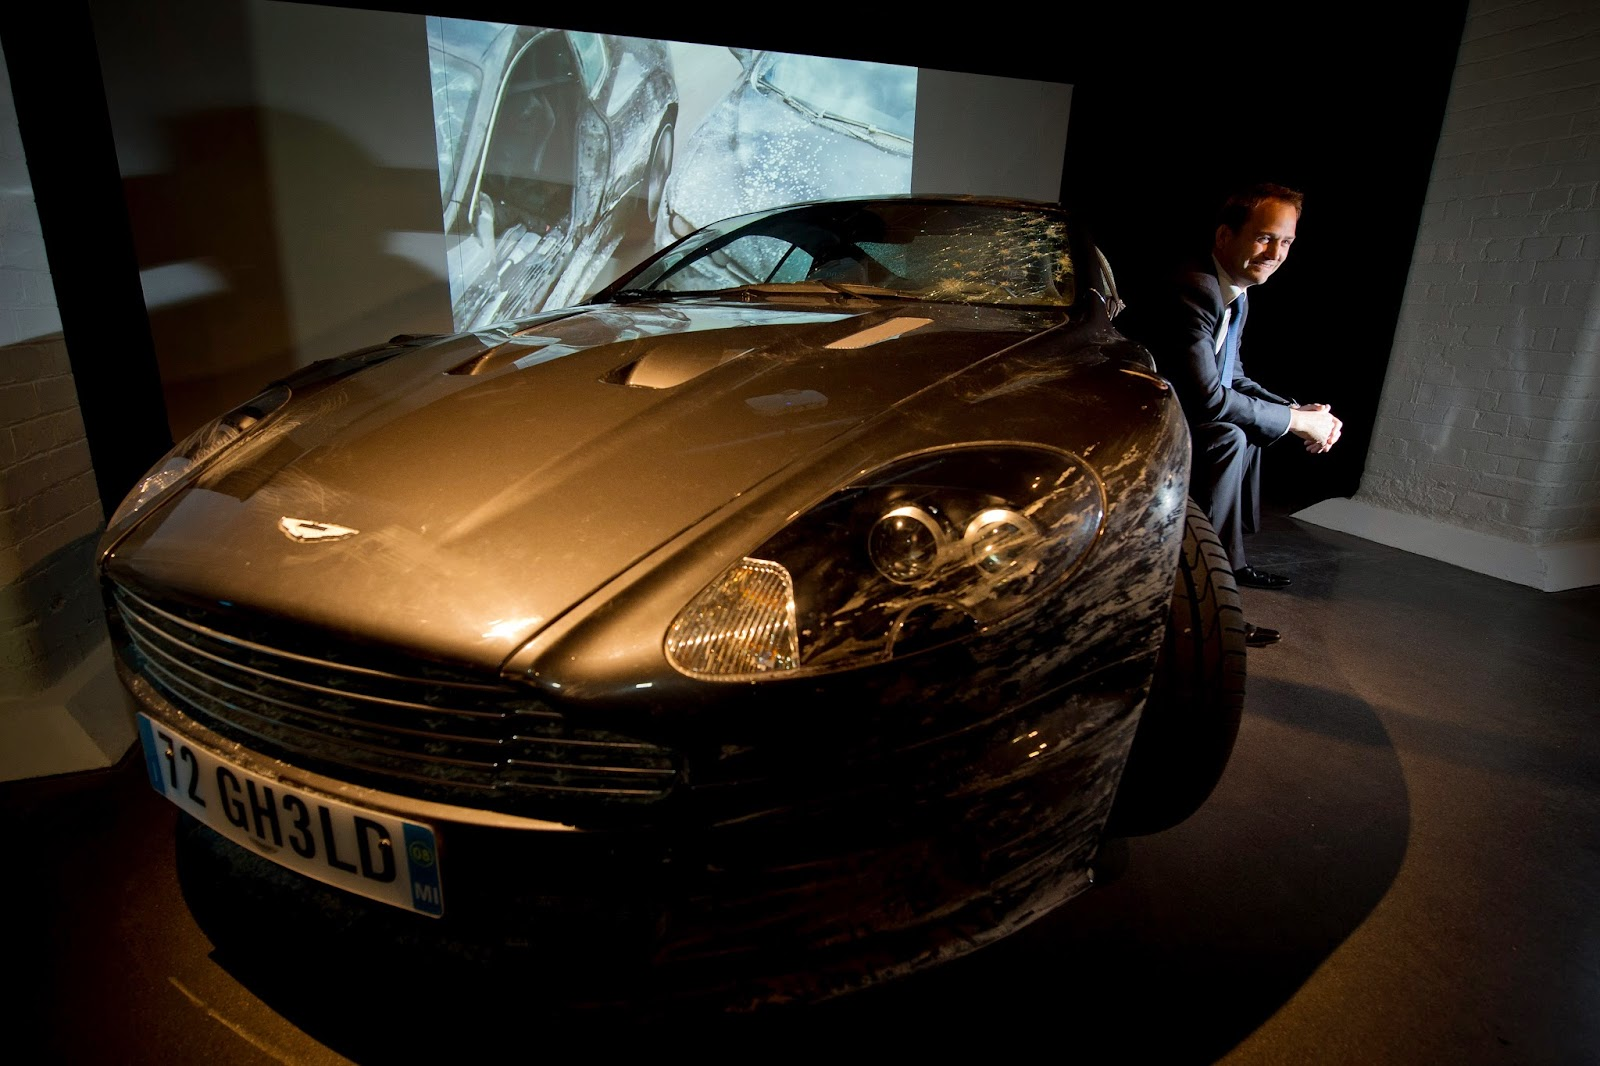 Bond 007, Bond Cars, Bond in Motion, Cars, Die Another Day, Exhibition, Film, Goldeneye, Goldfinger, Hollywood, James Bond, Life, Little Nellie, London, London Film Museum, Movies, Museum, Quantum of Solace, Showbiz,